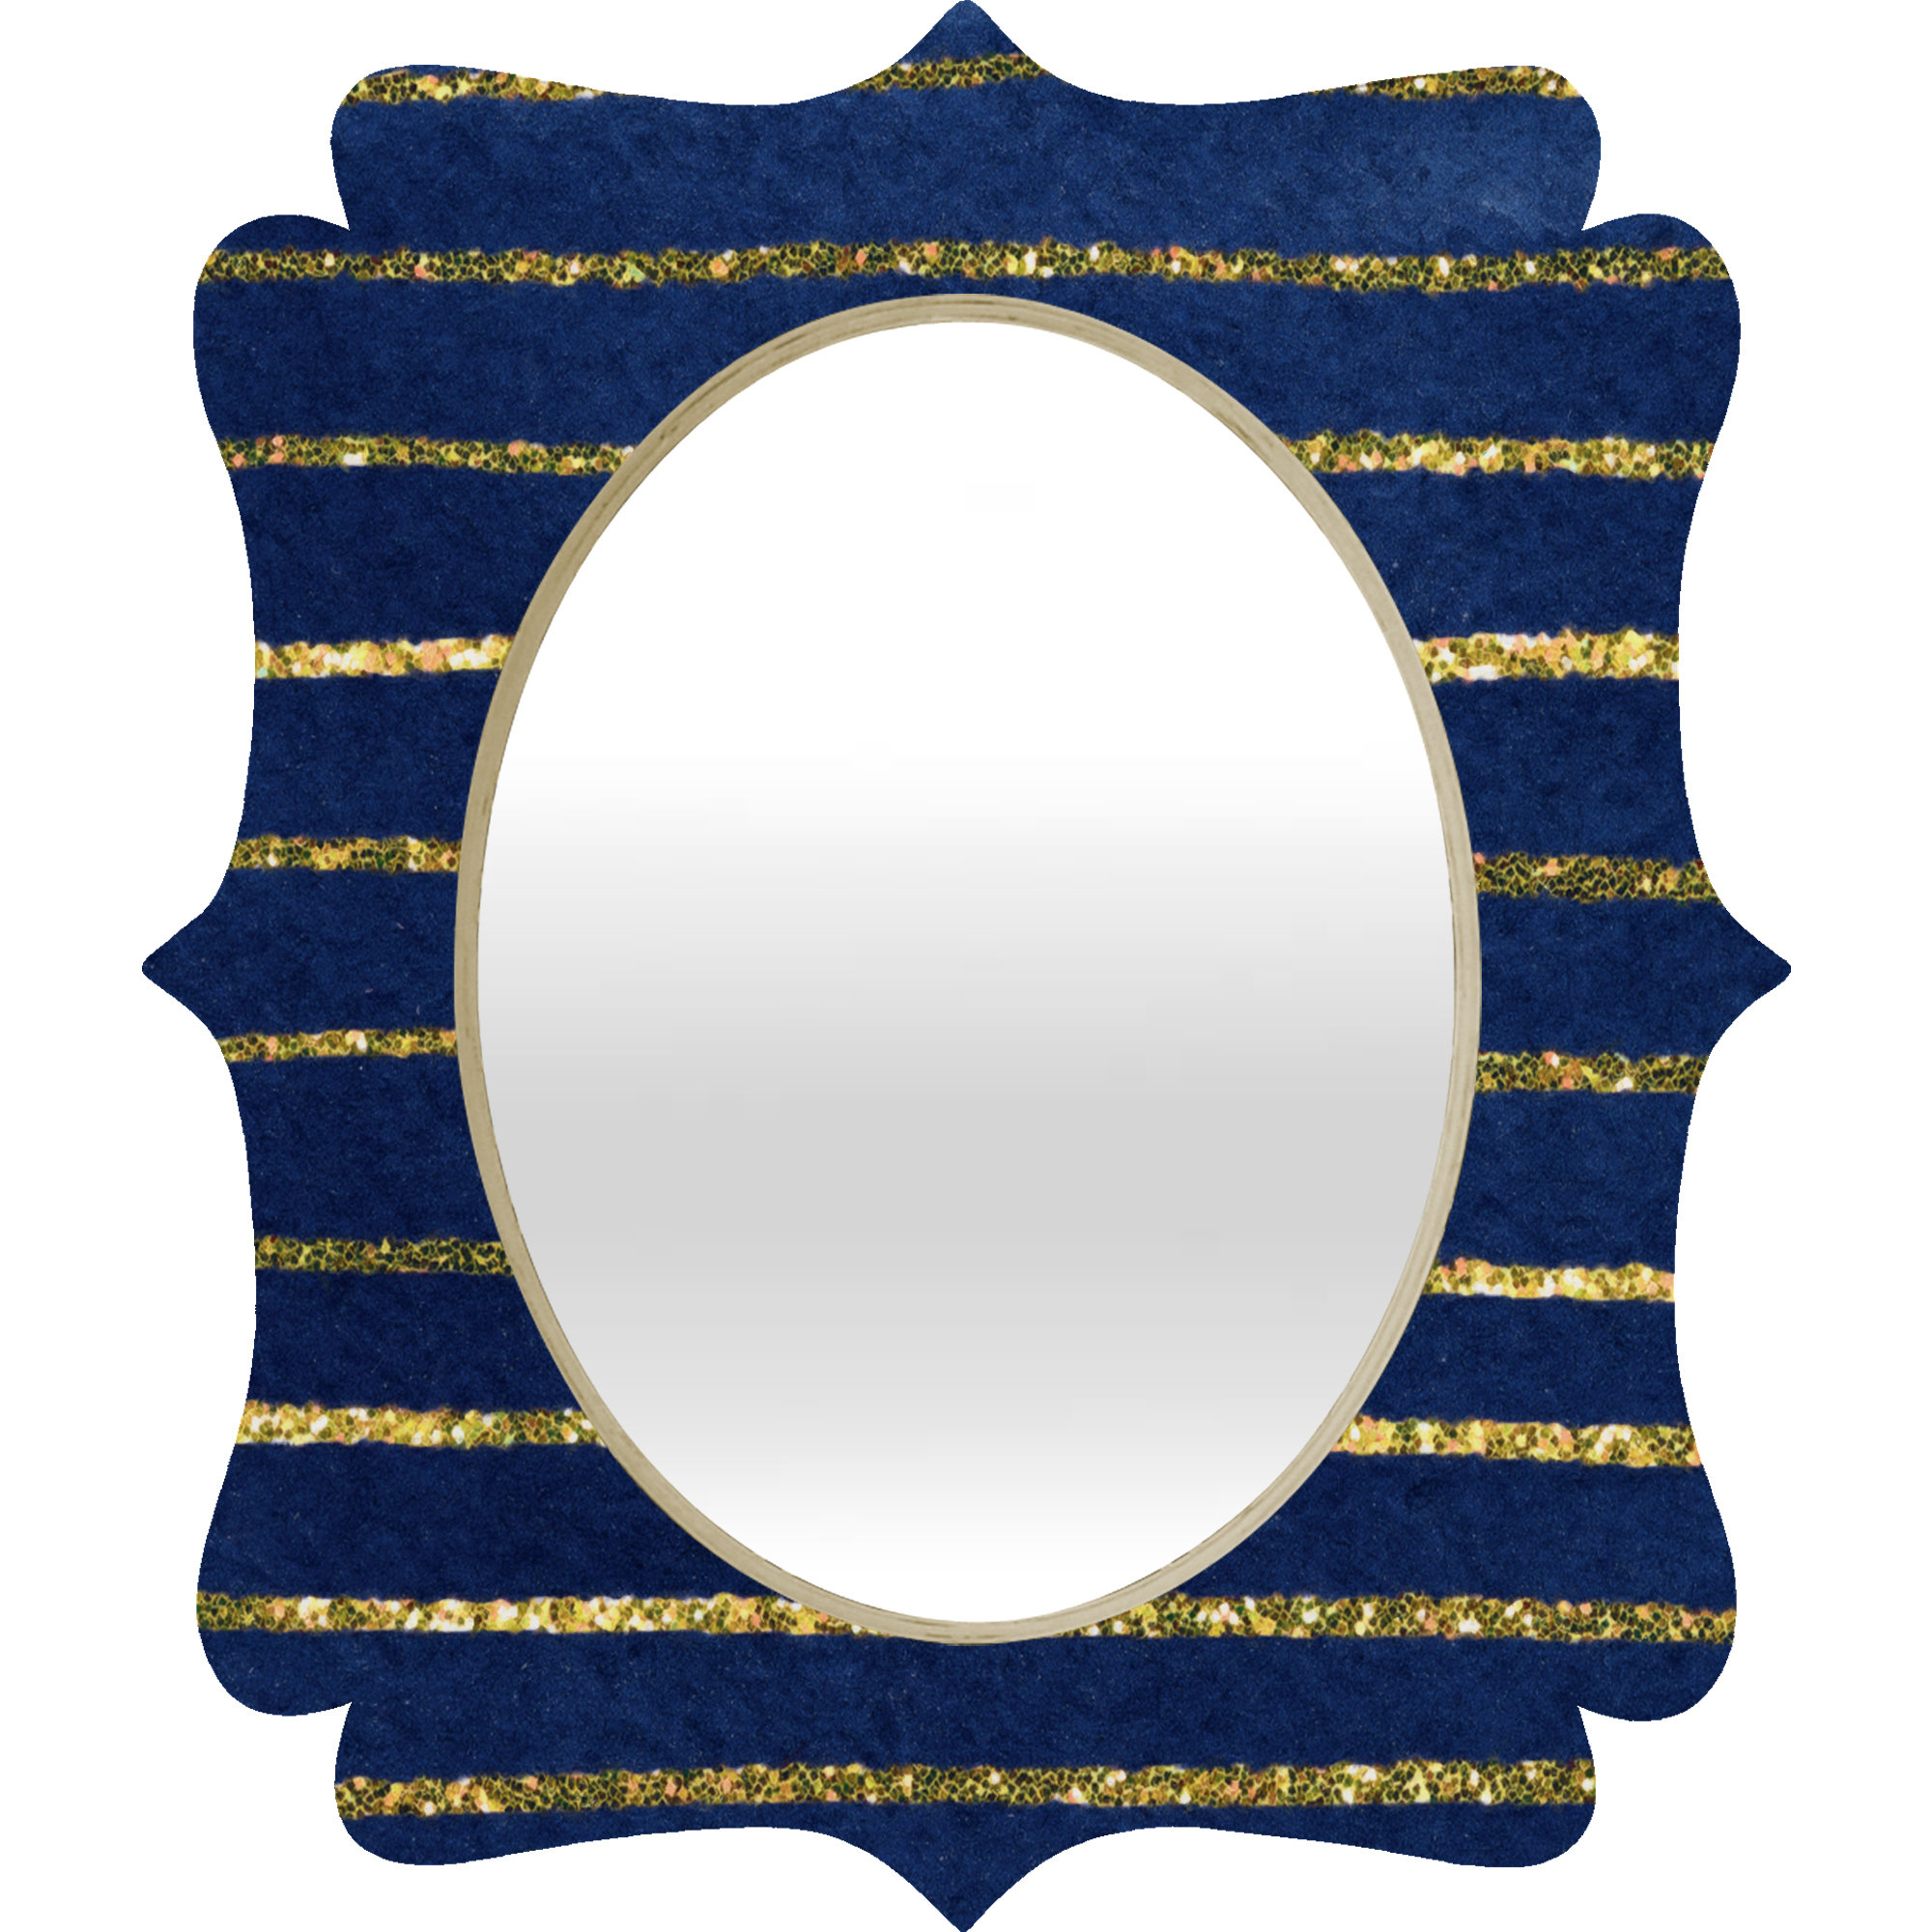 Social Proper Nautical Sparkle Wall Mirror Inside Best And Newest Sparkle Wall Mirrors (Gallery 20 of 20)